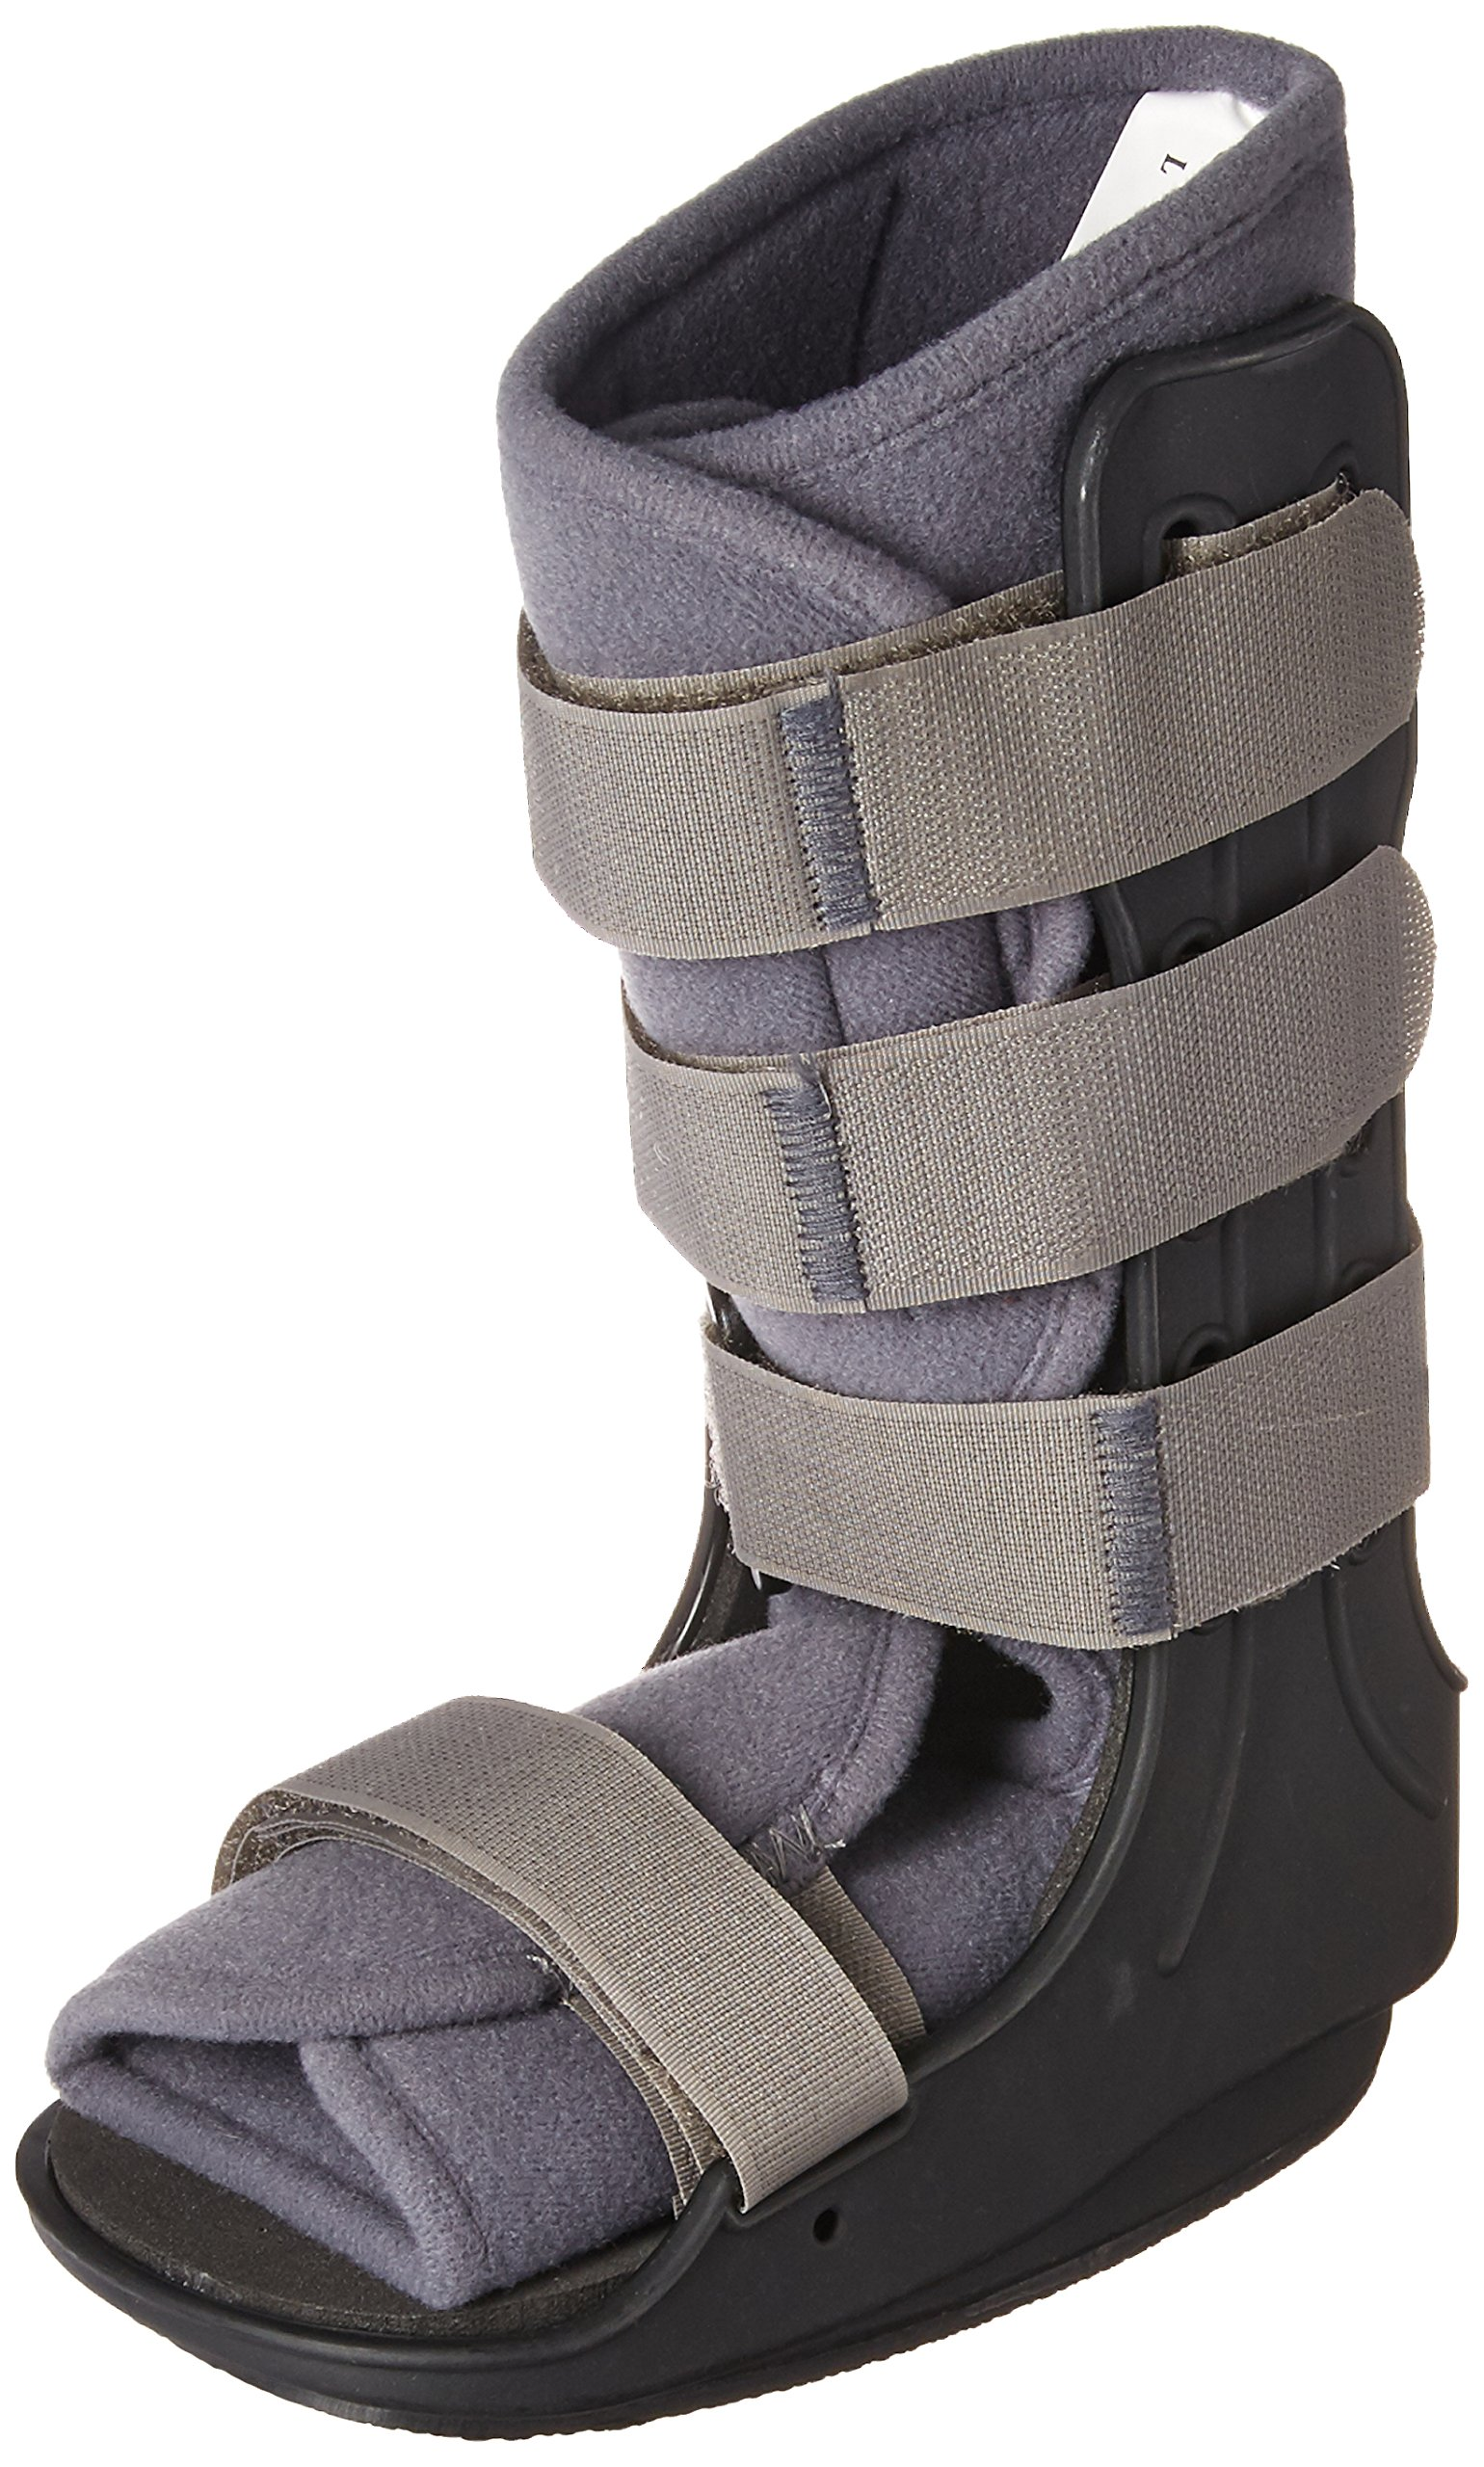 Sammons Preston Large Pediatric Walker, Comfort Fit Brace and Support for Children and Kids, Lightweight Padded Immobilizer for Stable Fractures, Foot Injuries, and Ankle Sprains in Young Children